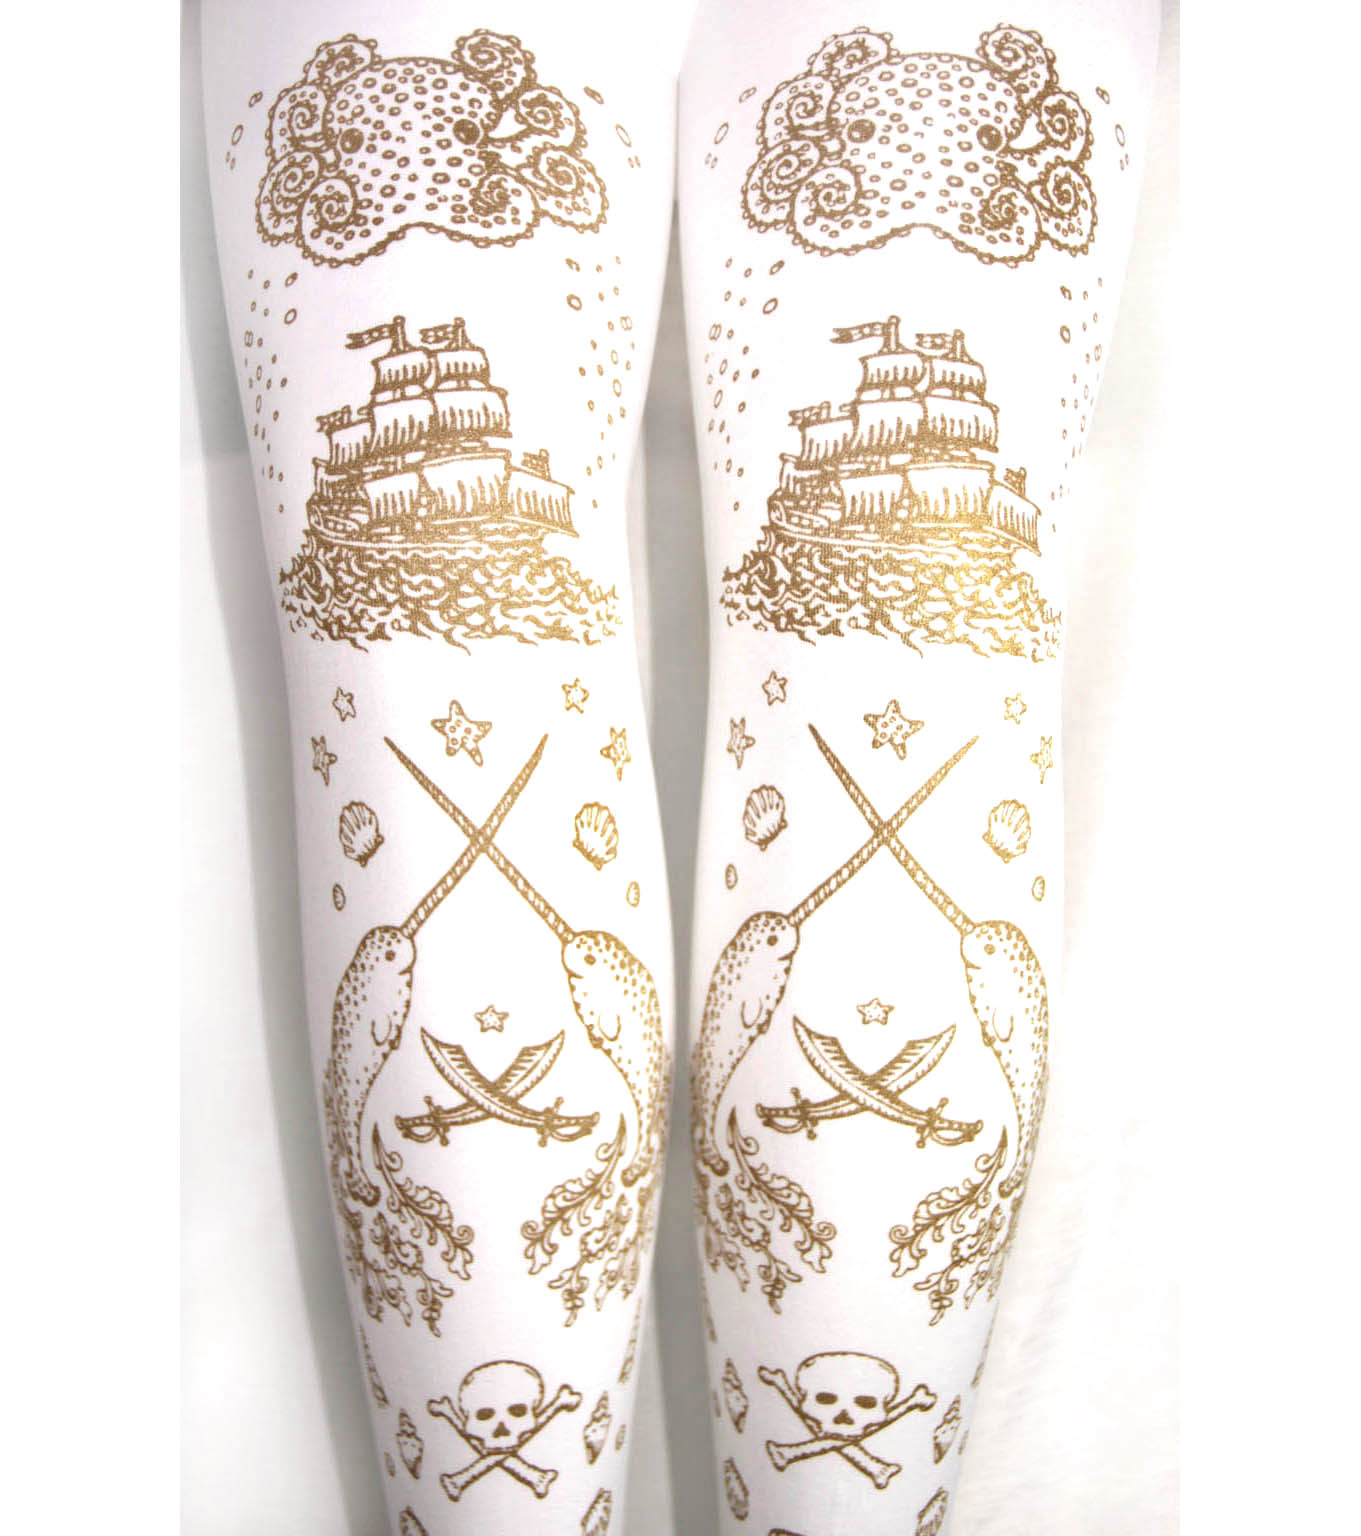 d4ca040292c Narwhal Printed Tights Gold on White Pirate Tattoo Print Sailor Lolita